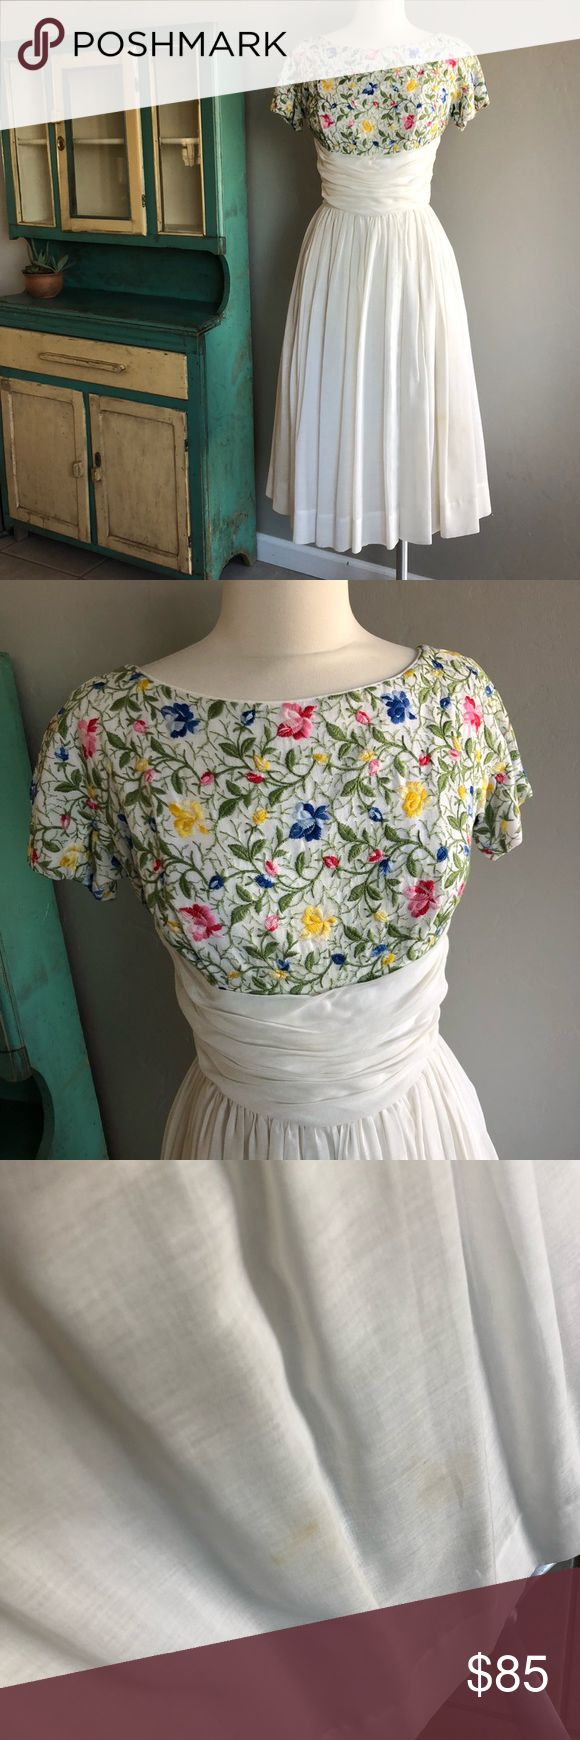 50's Floral Embroidered Linen Dress 1950's Bright Floral Embroidered Linen, Cotton, and Voile, Skirt. Does have small stain as seen in pic.  size: small Maggi Stover Dresses Midi